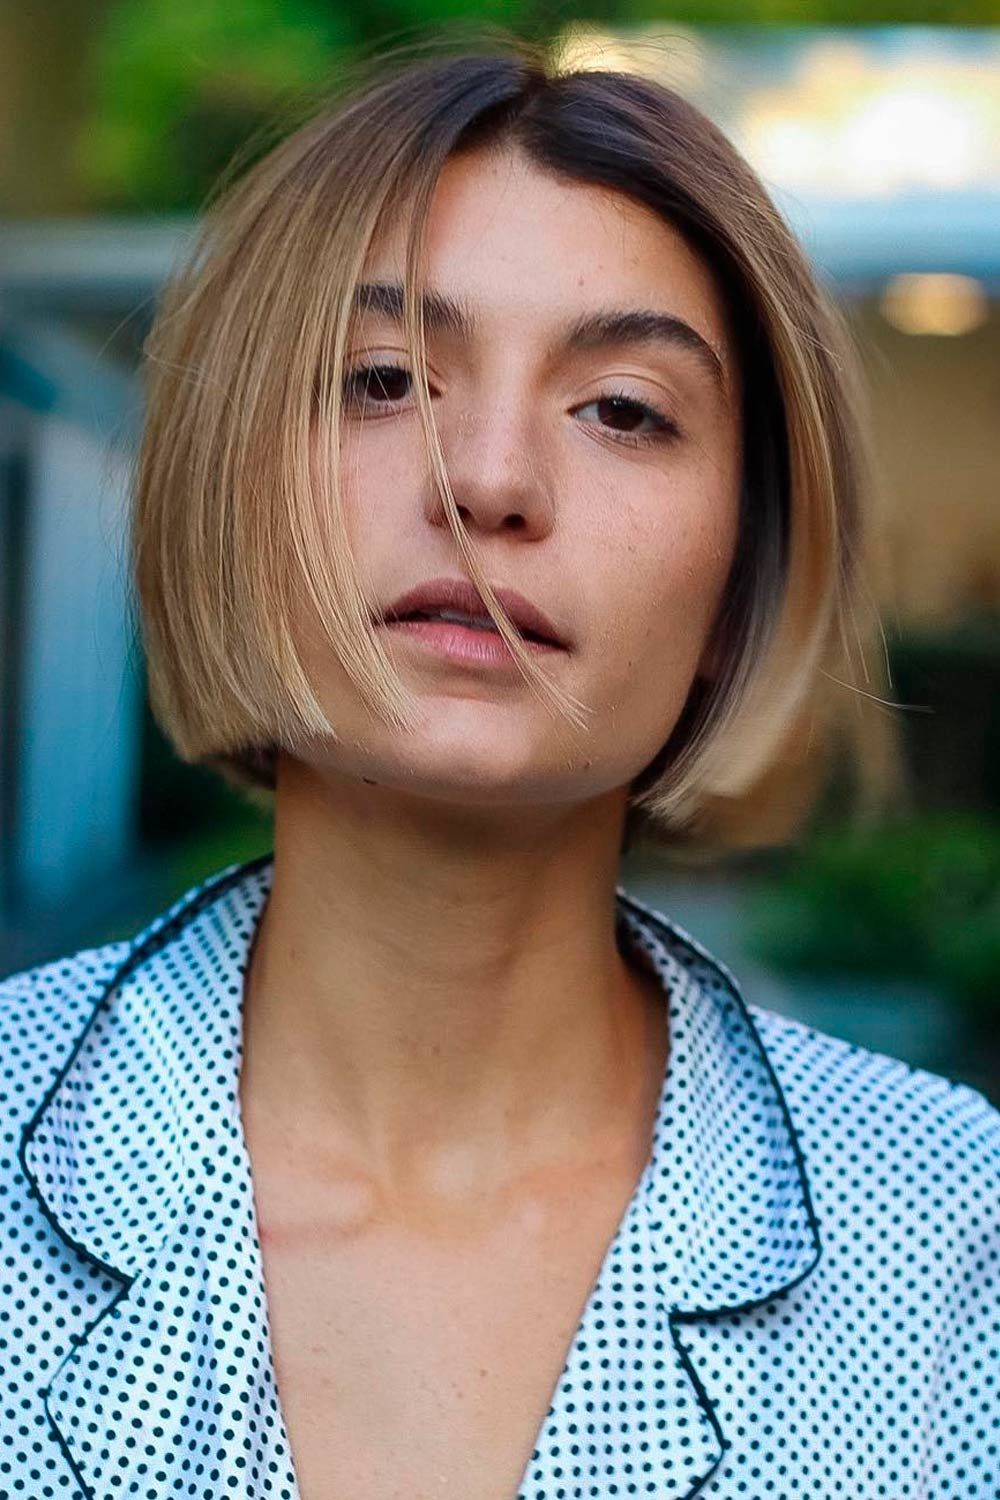 Bob Hairstyles For Round Faces, short hairstyles for older round faces, short layered hairstyles for round faces, short haircuts for round faces